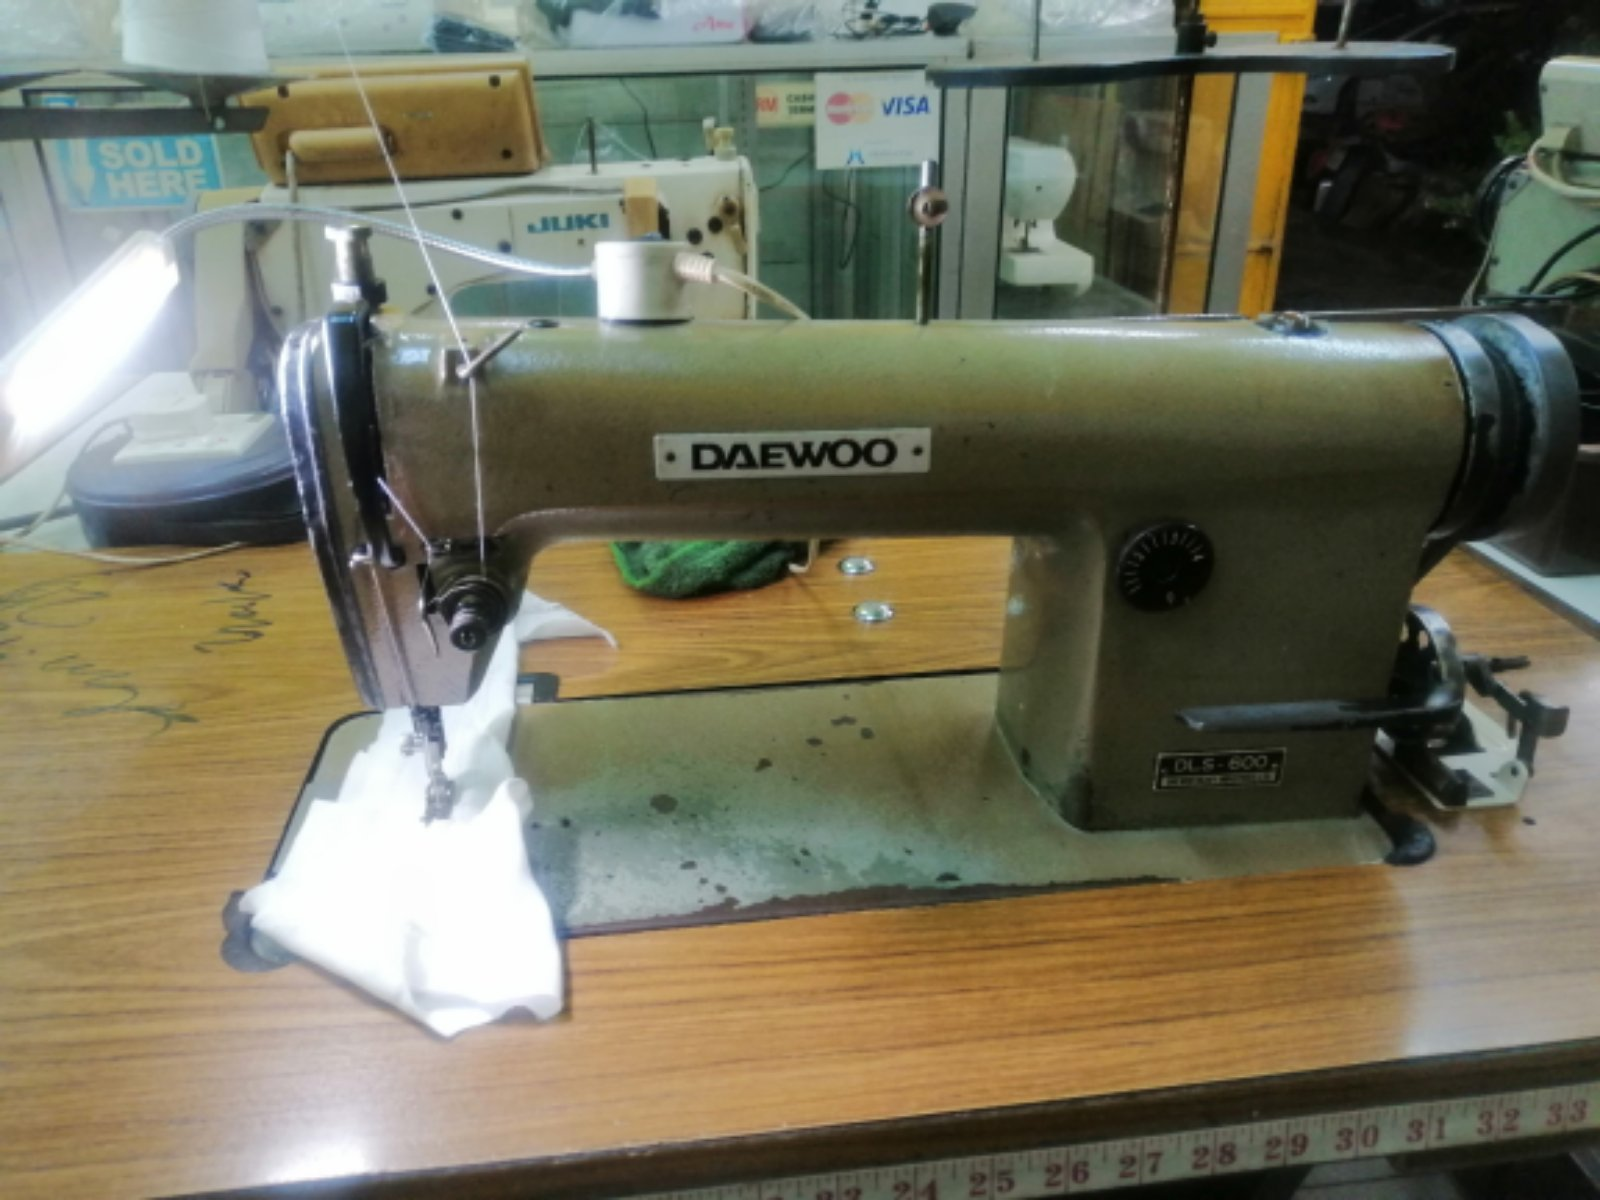 REPAIR Daewoo hi speed sewing machines